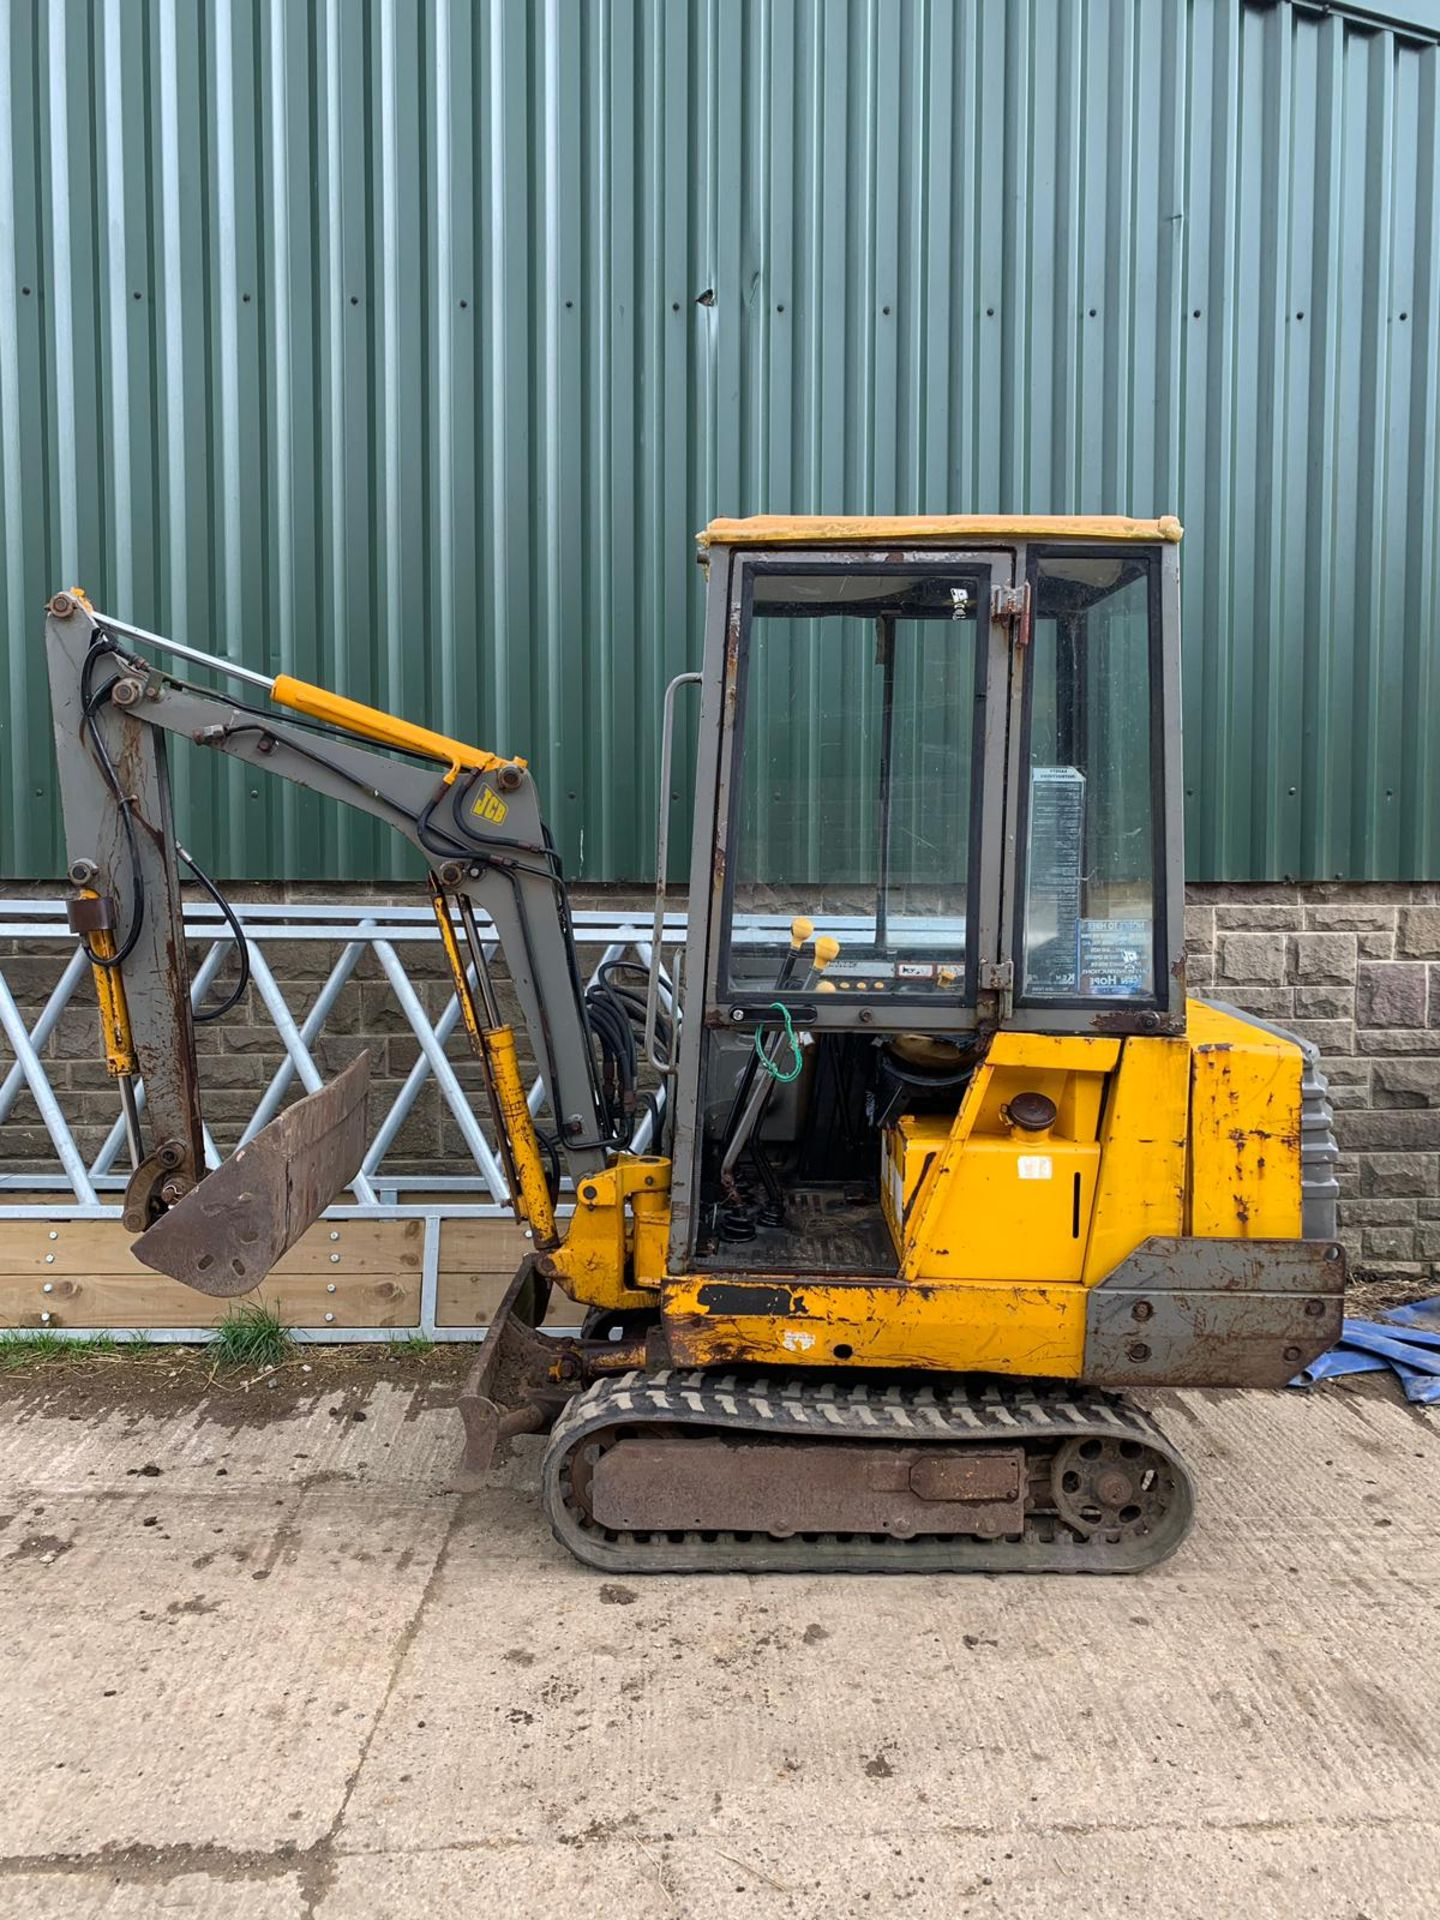 Lot 21 - JCB 801.4 1.5 TON TRACKED DIGGER / EXCAVATOR, RUNS, WORKS AND DIGS *PLUS VAT*